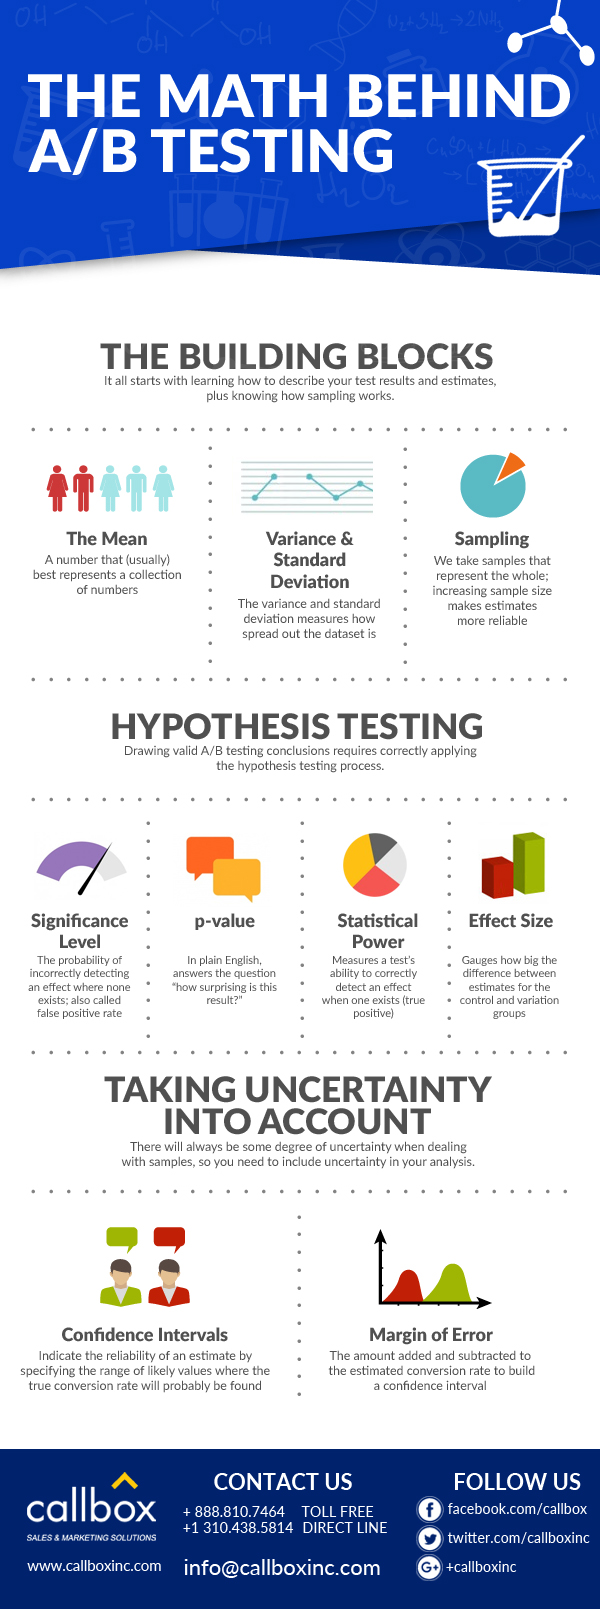 The Math Behind A/B Testing: A (Simplified) Visual Guide [INFOGRAPHIC]